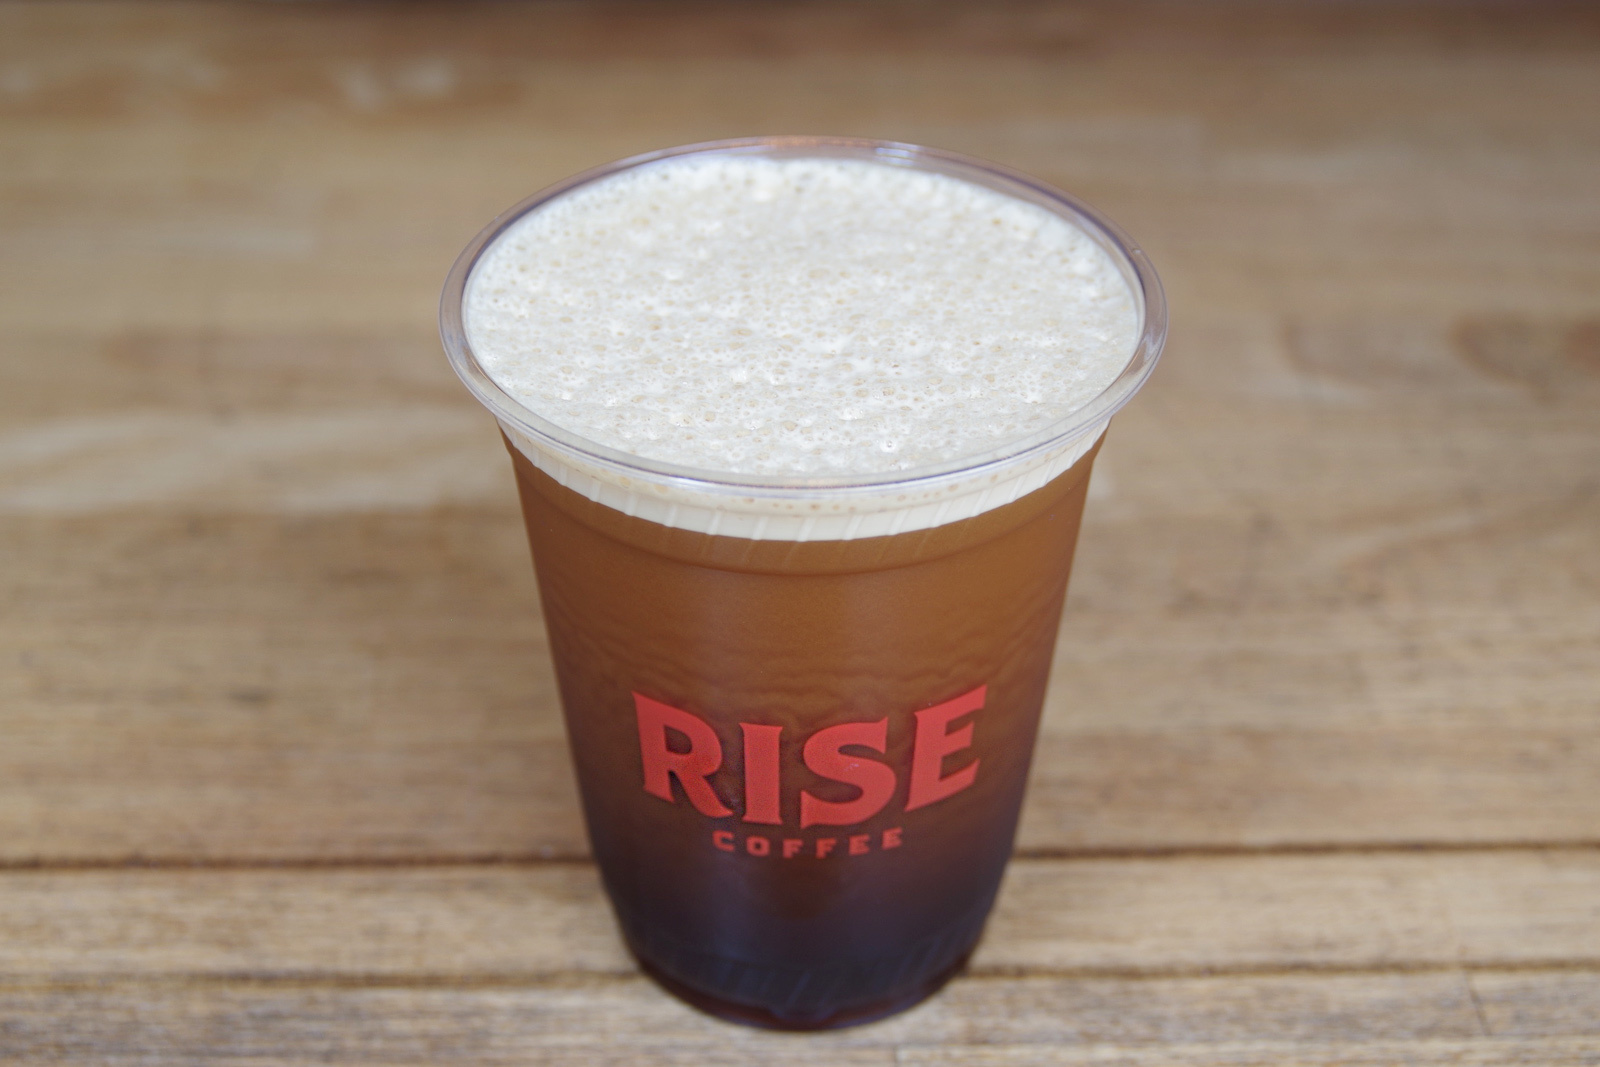 RISE Nitro Cold Brew and other great craft on draft options are now available for coffee lovers and foodies in Connecticut and Westchester, from Joyride!